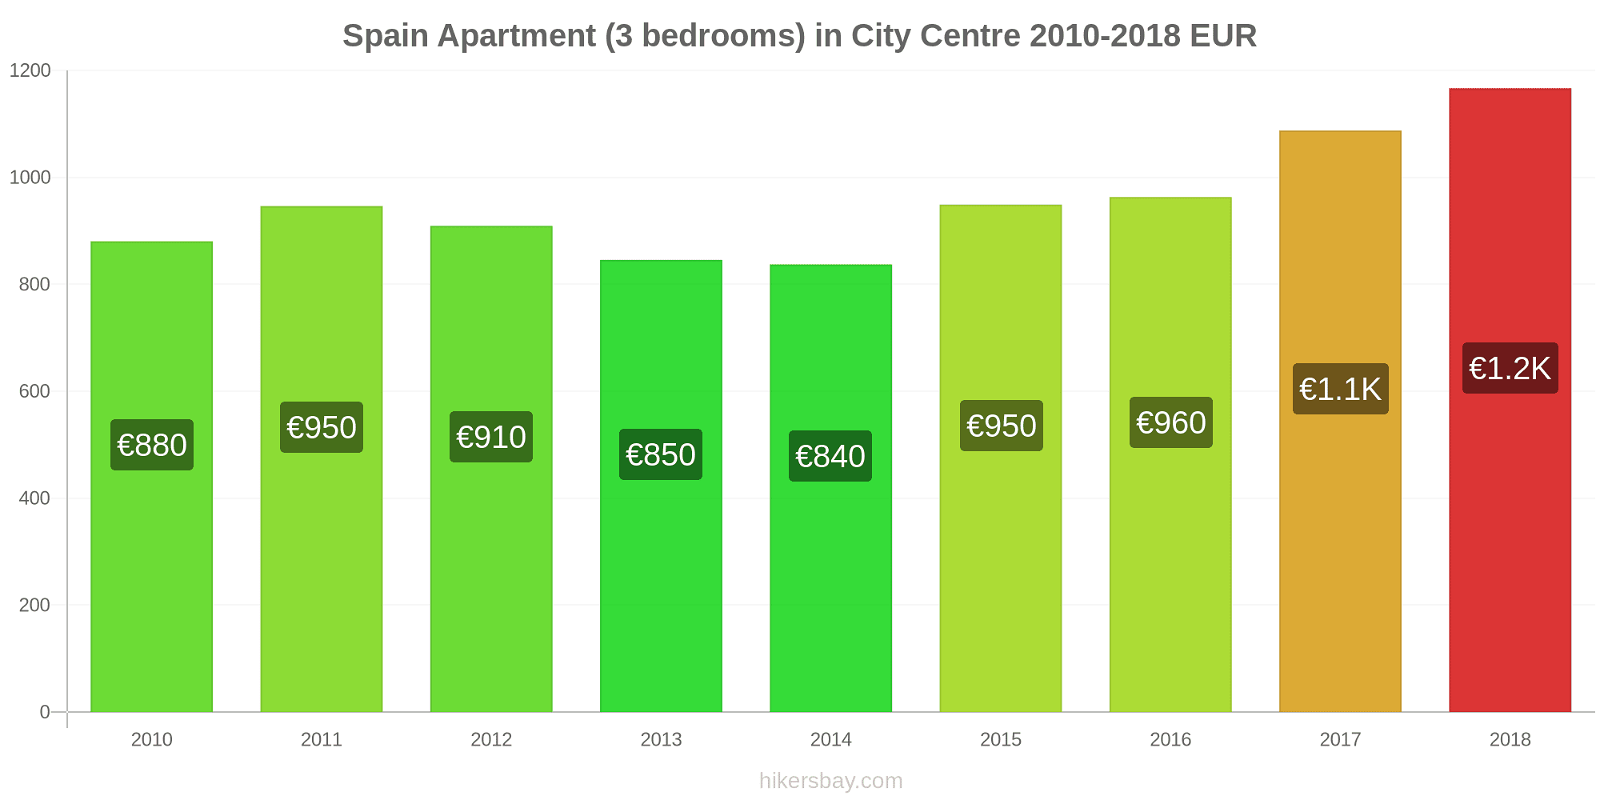 Spain price changes Apartment (3 bedrooms) in City Centre hikersbay.com